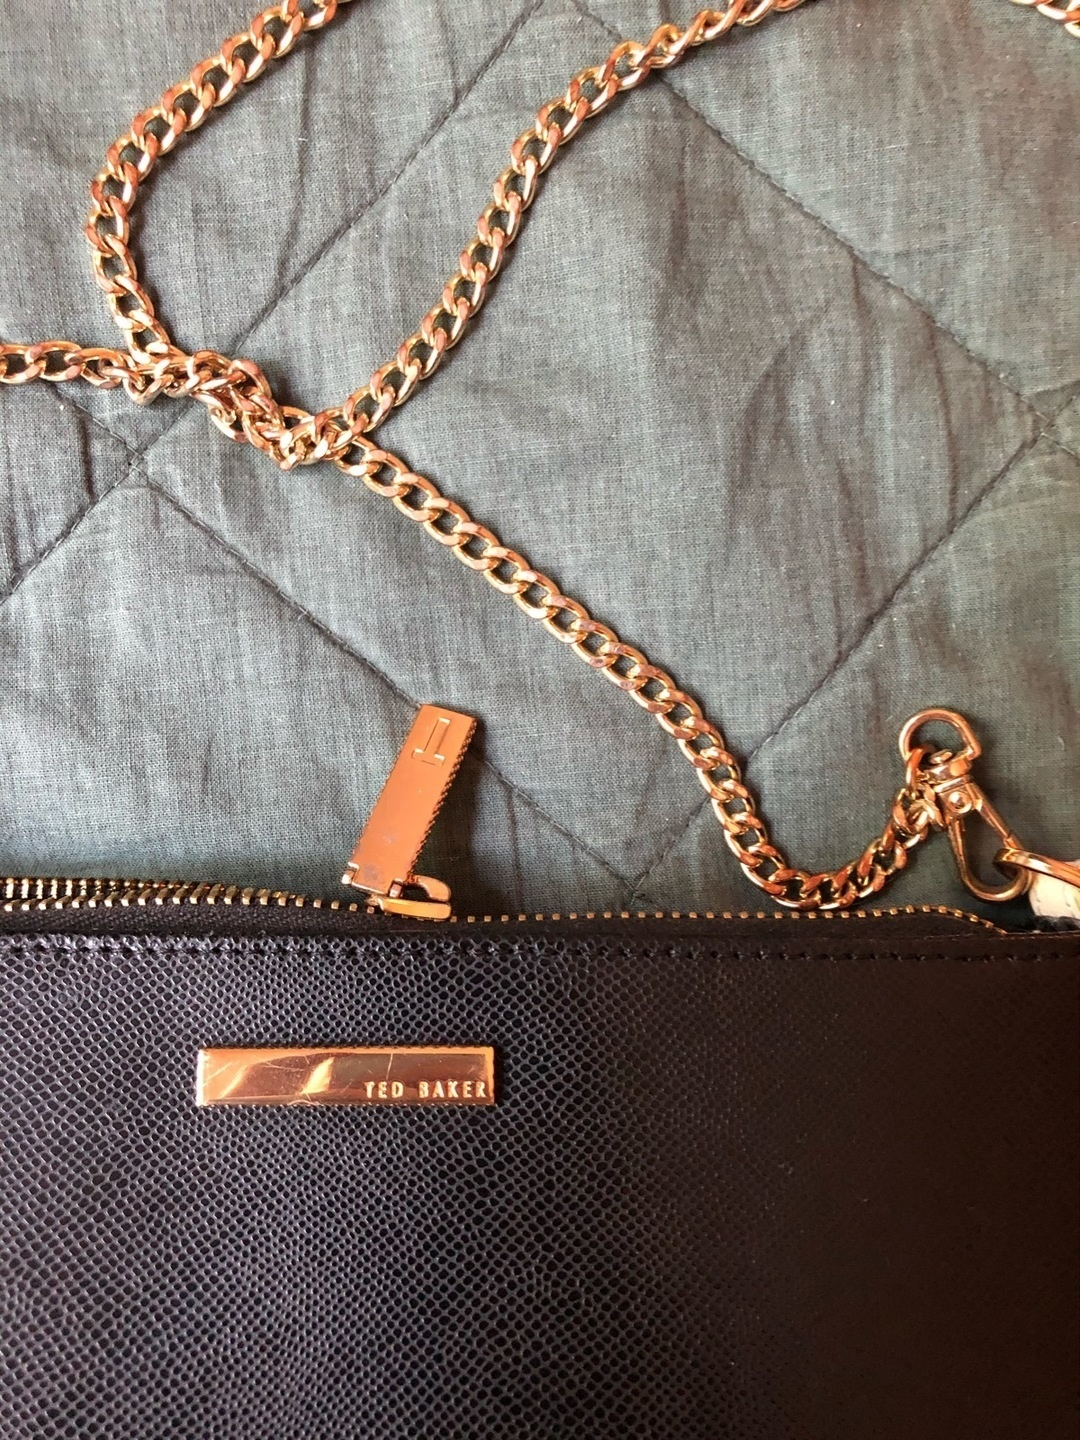 Women's bags & purses - TED BAKER photo 4